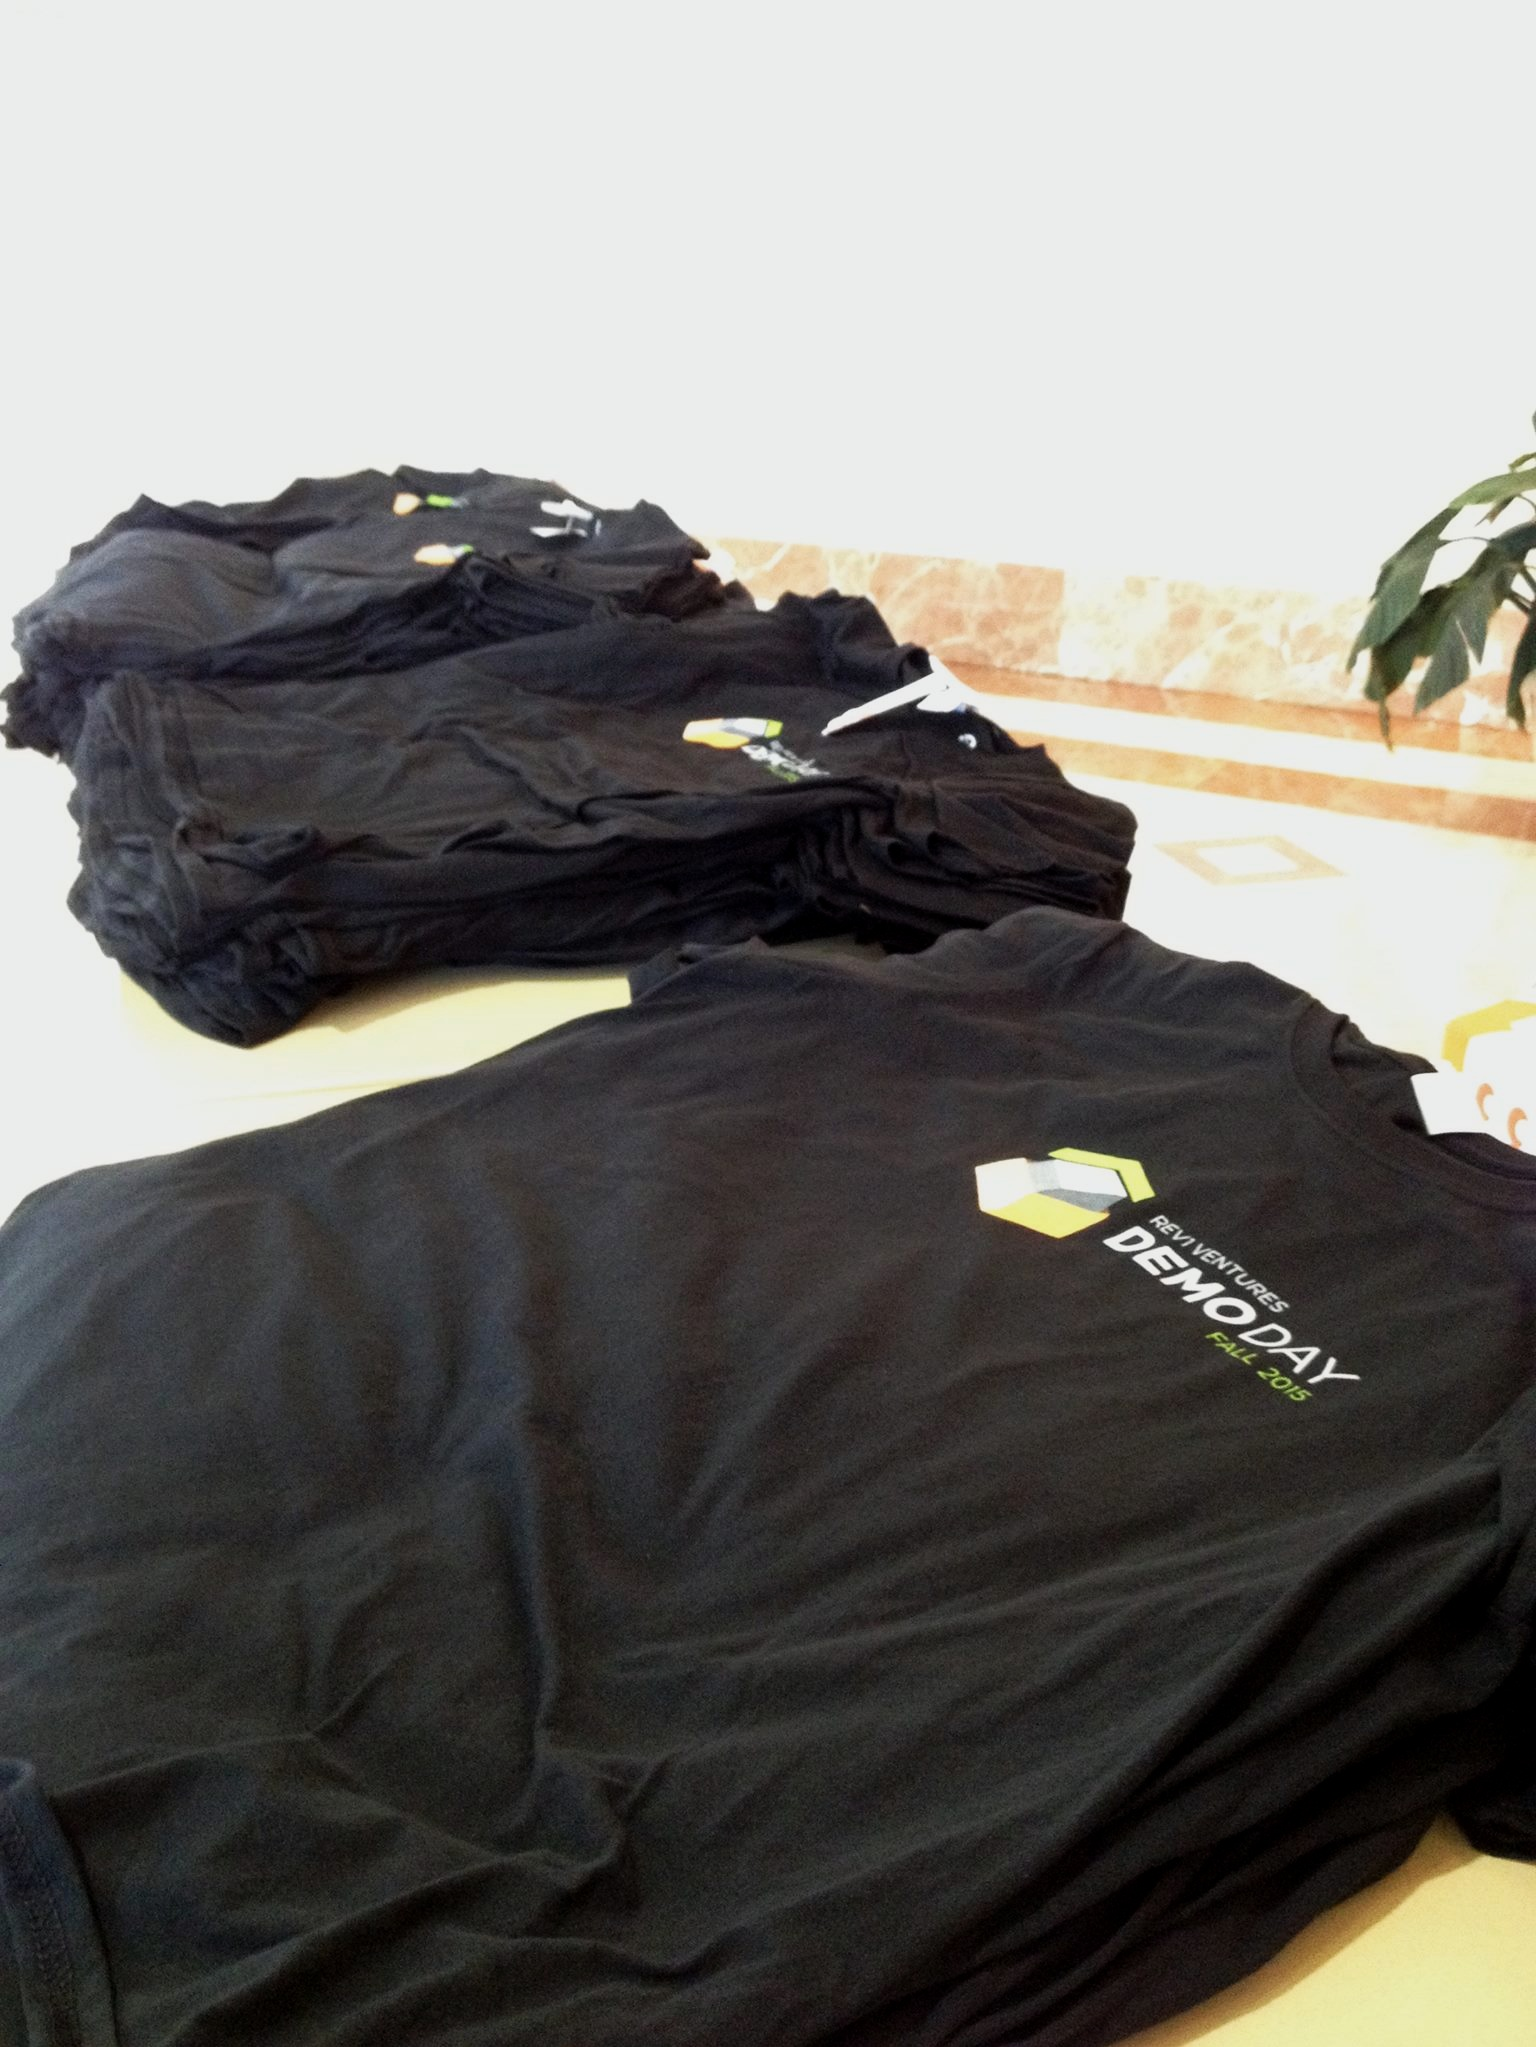 Demo+Day+T-Shirts